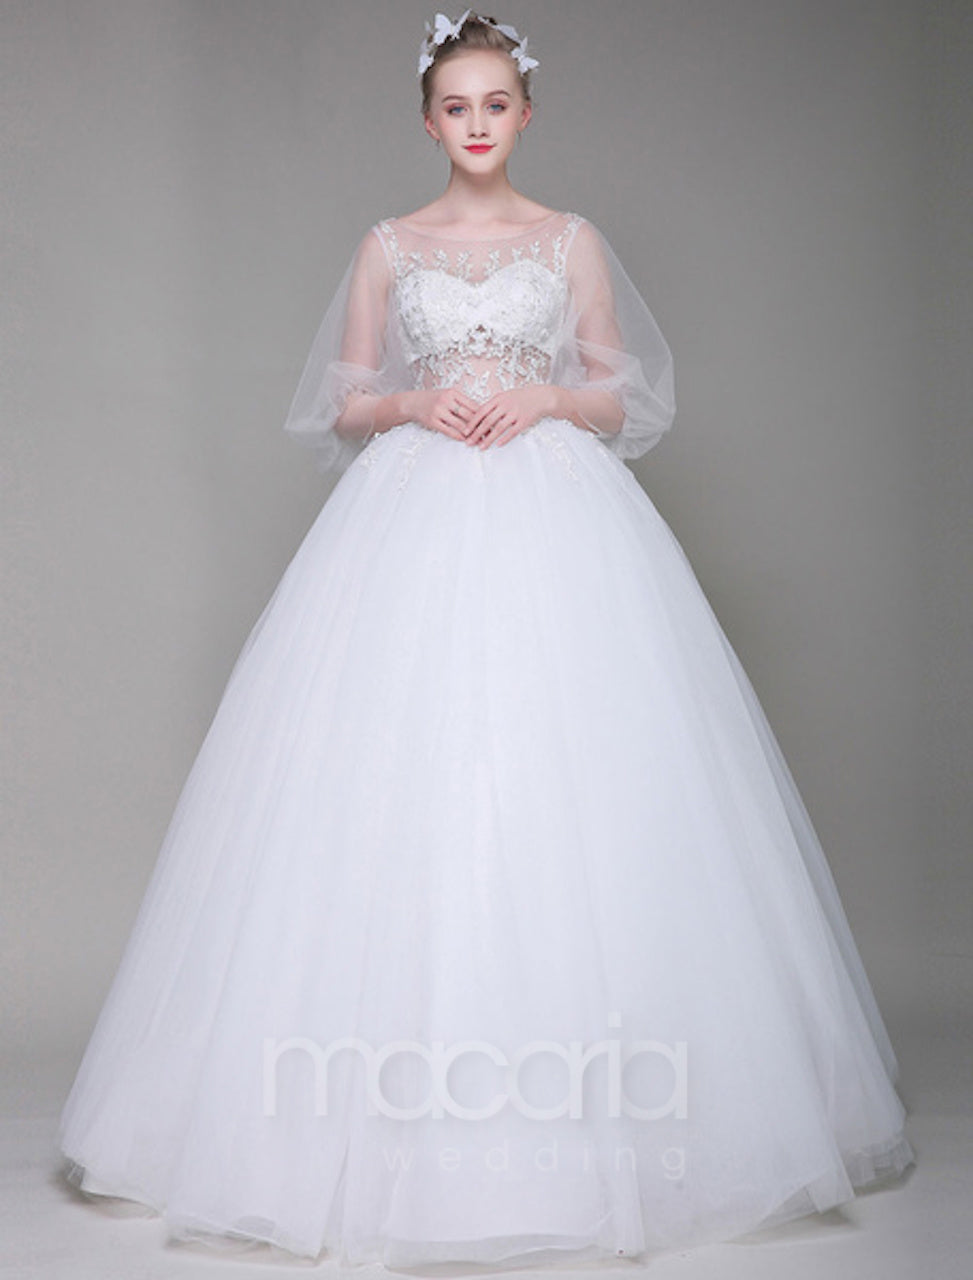 Wedding Dresses - Illusion Princess Ball Gown | Macaria Wedding